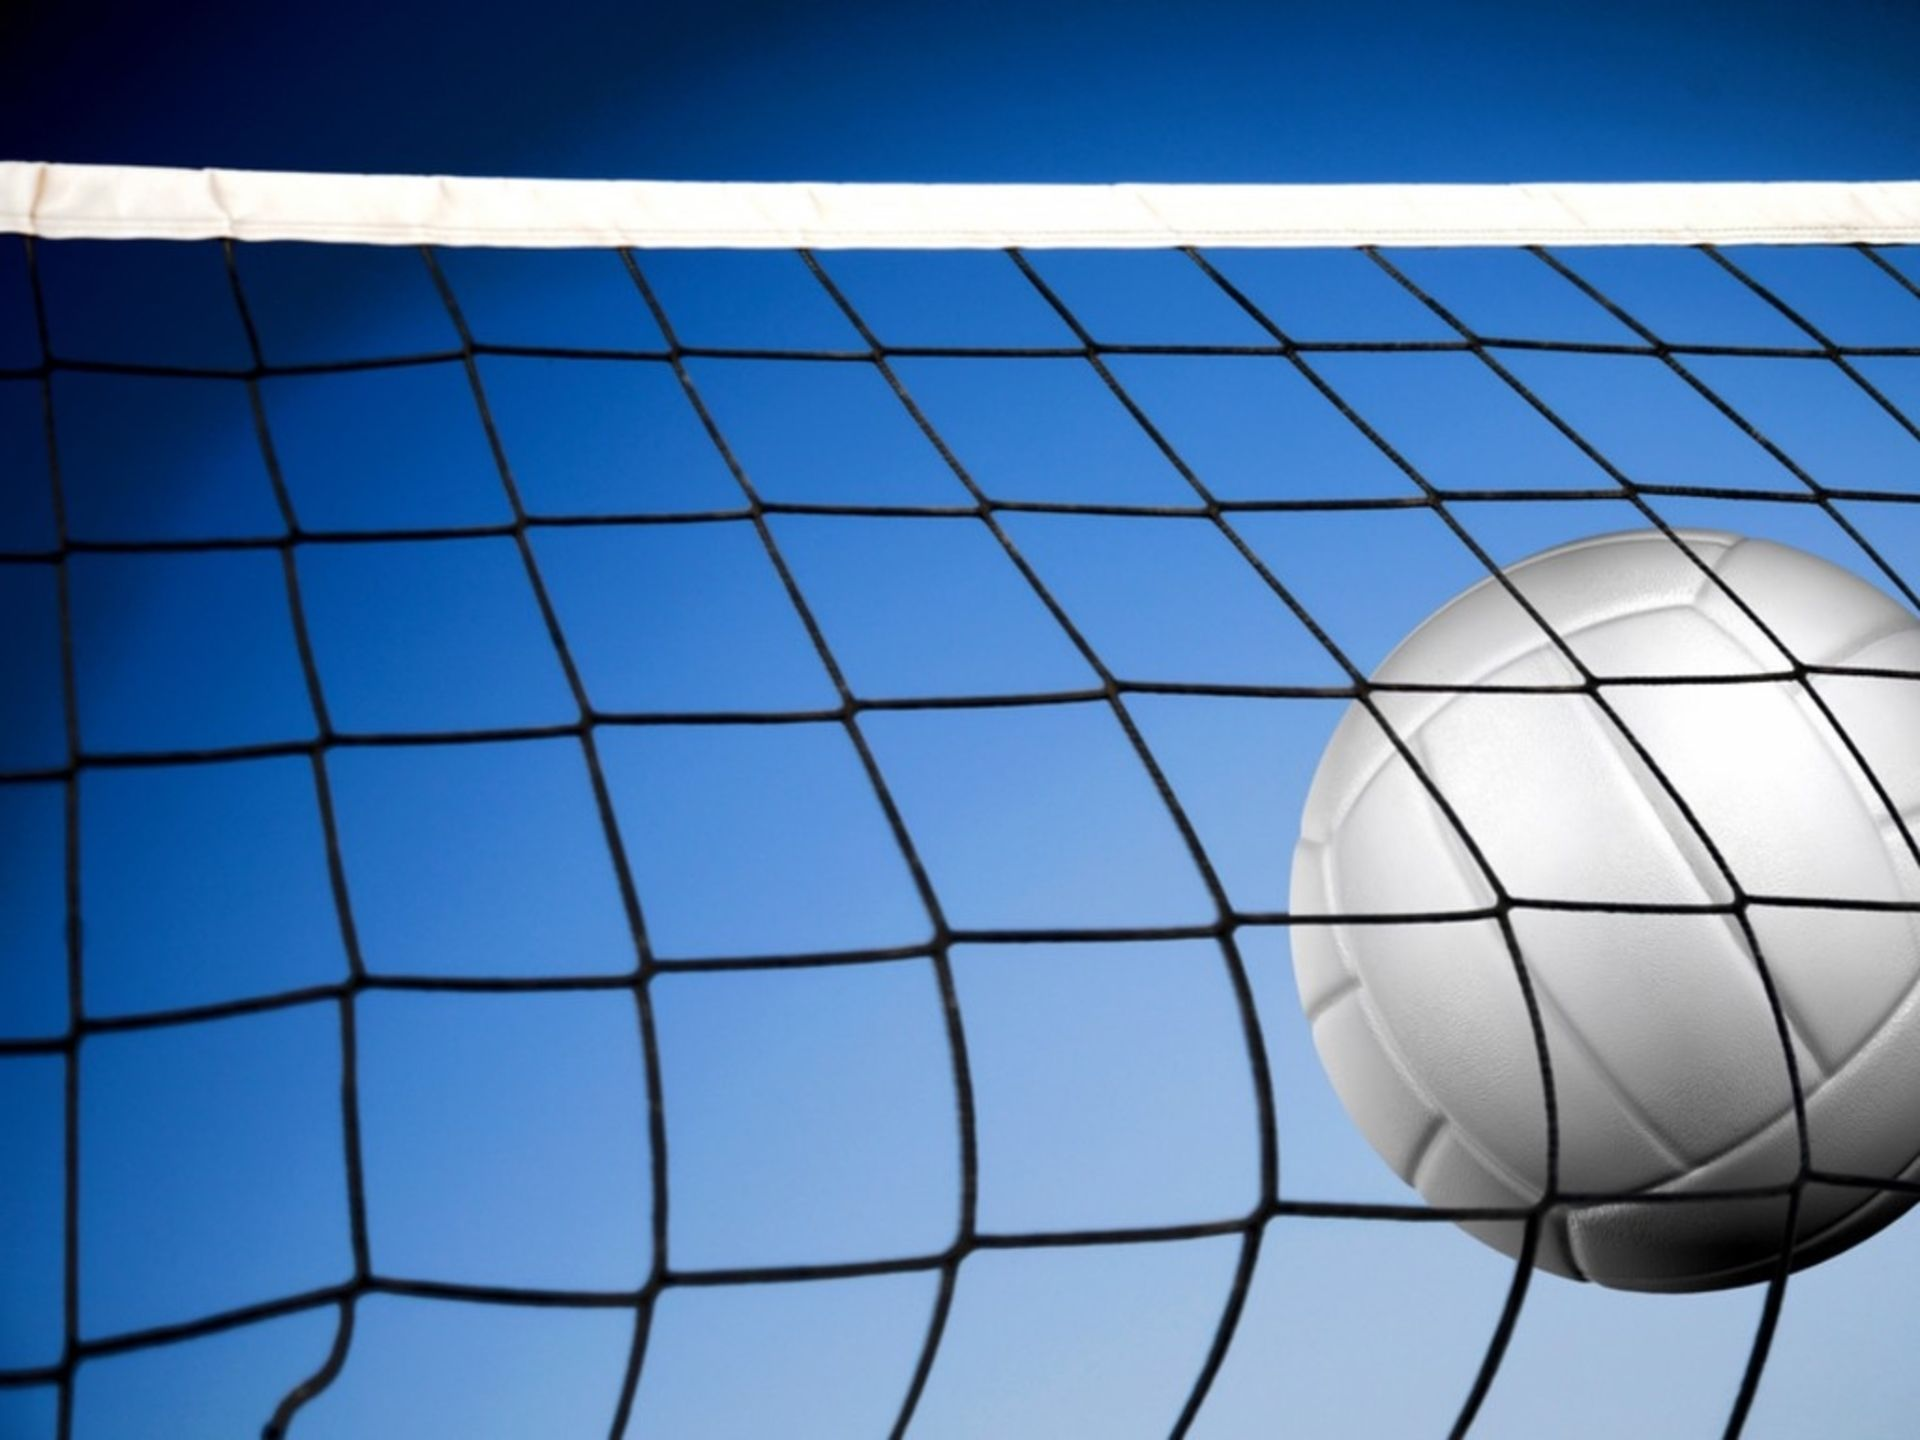 Volleyball Wallpaper Google Search Volleyball Wallpaper Indoor Volleyball Volleyball Clubs